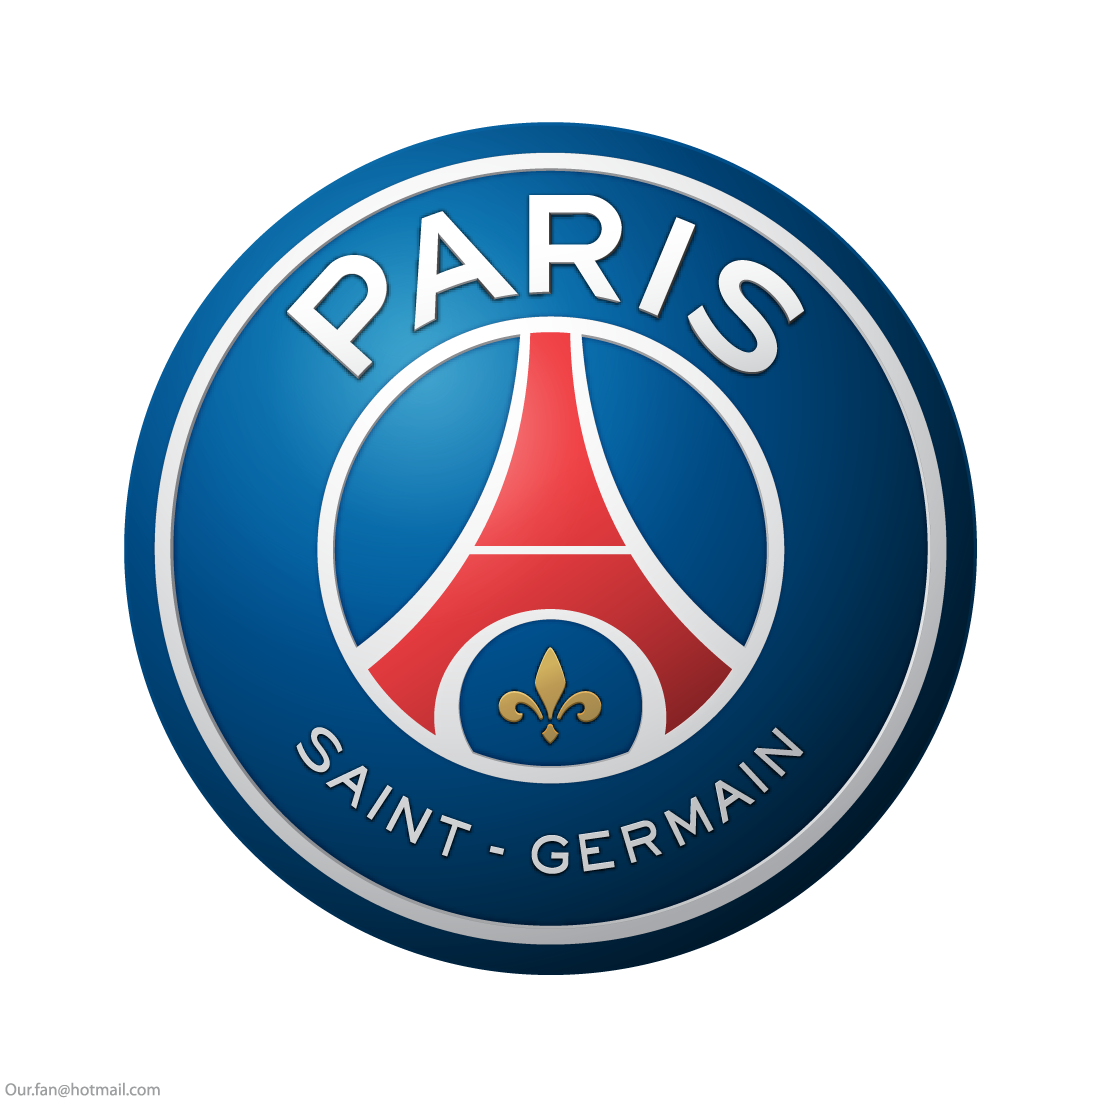 psg logo escudo paris saint germain 3 - PSG Logo - Paris Saint-Germain Logo